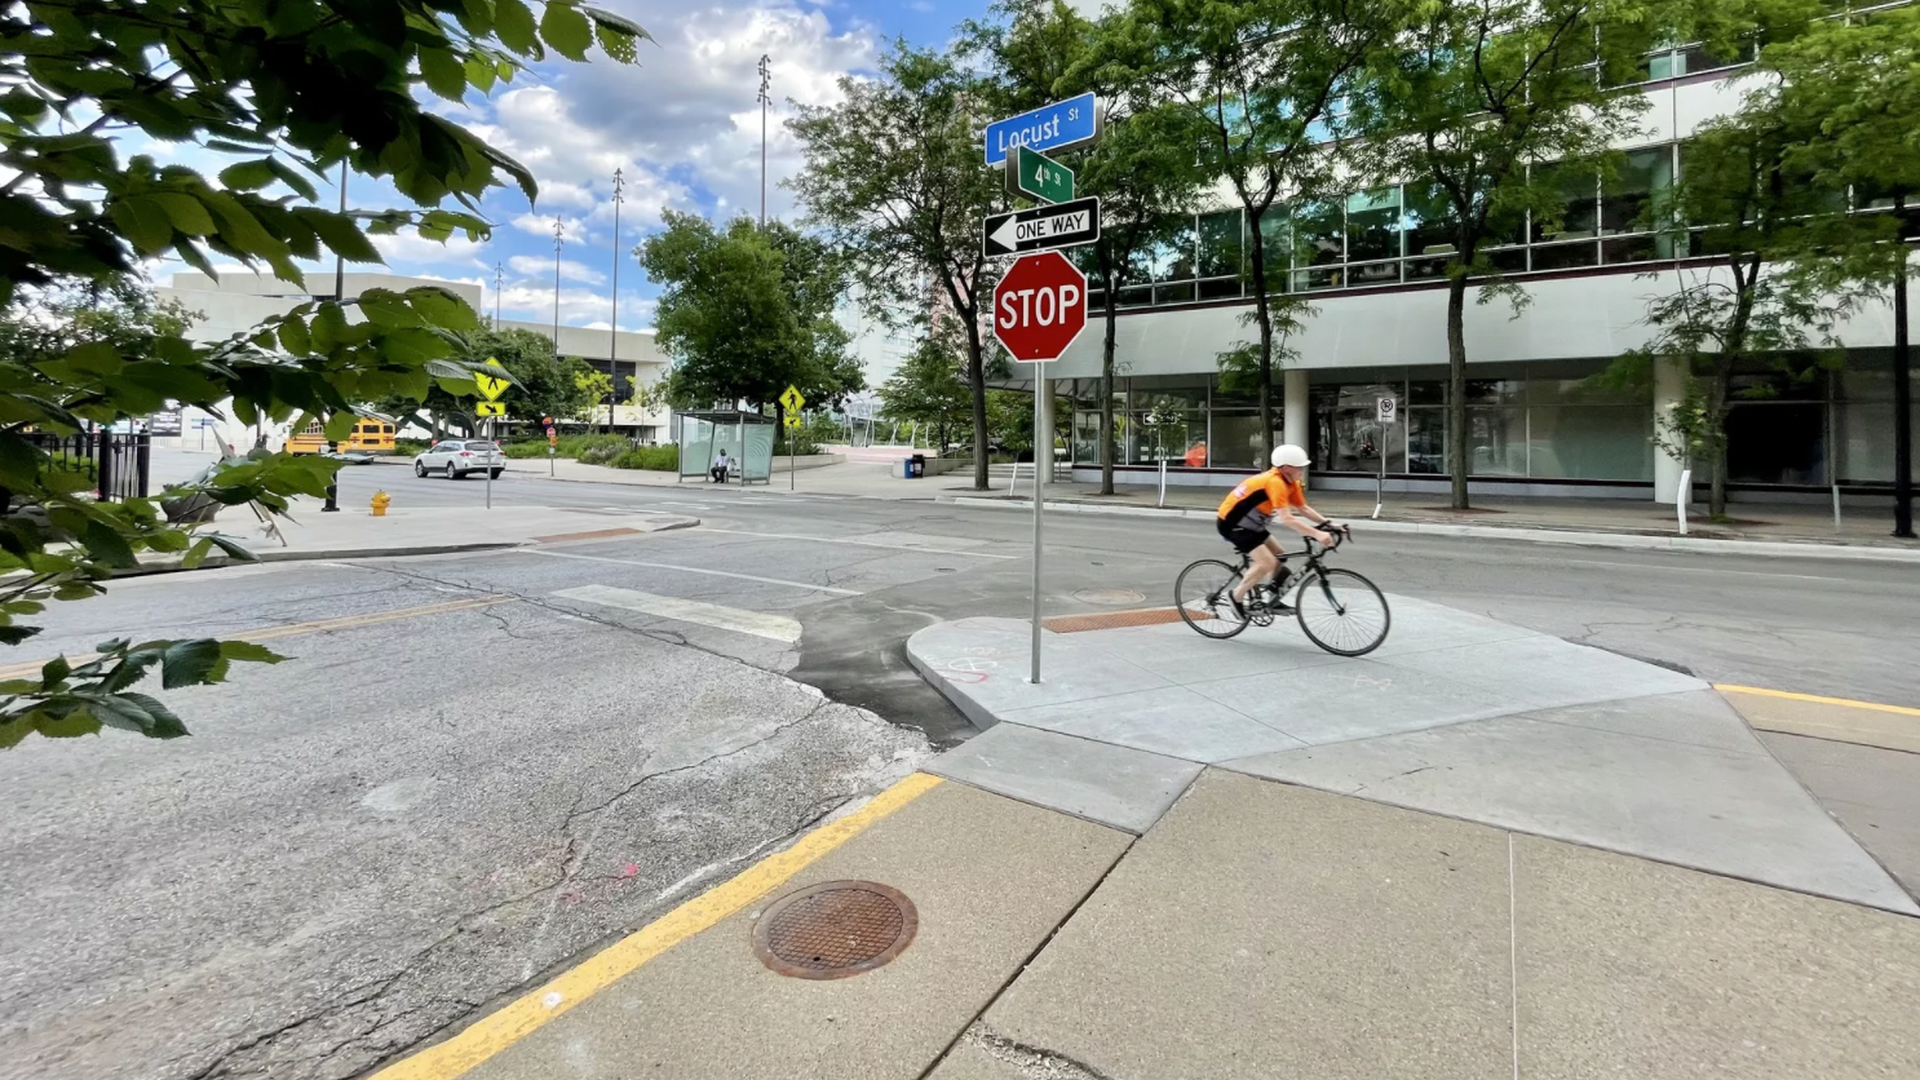 A bicyclist riding by a bumpout near the corner of 4th and Locust streets in Des Moines.